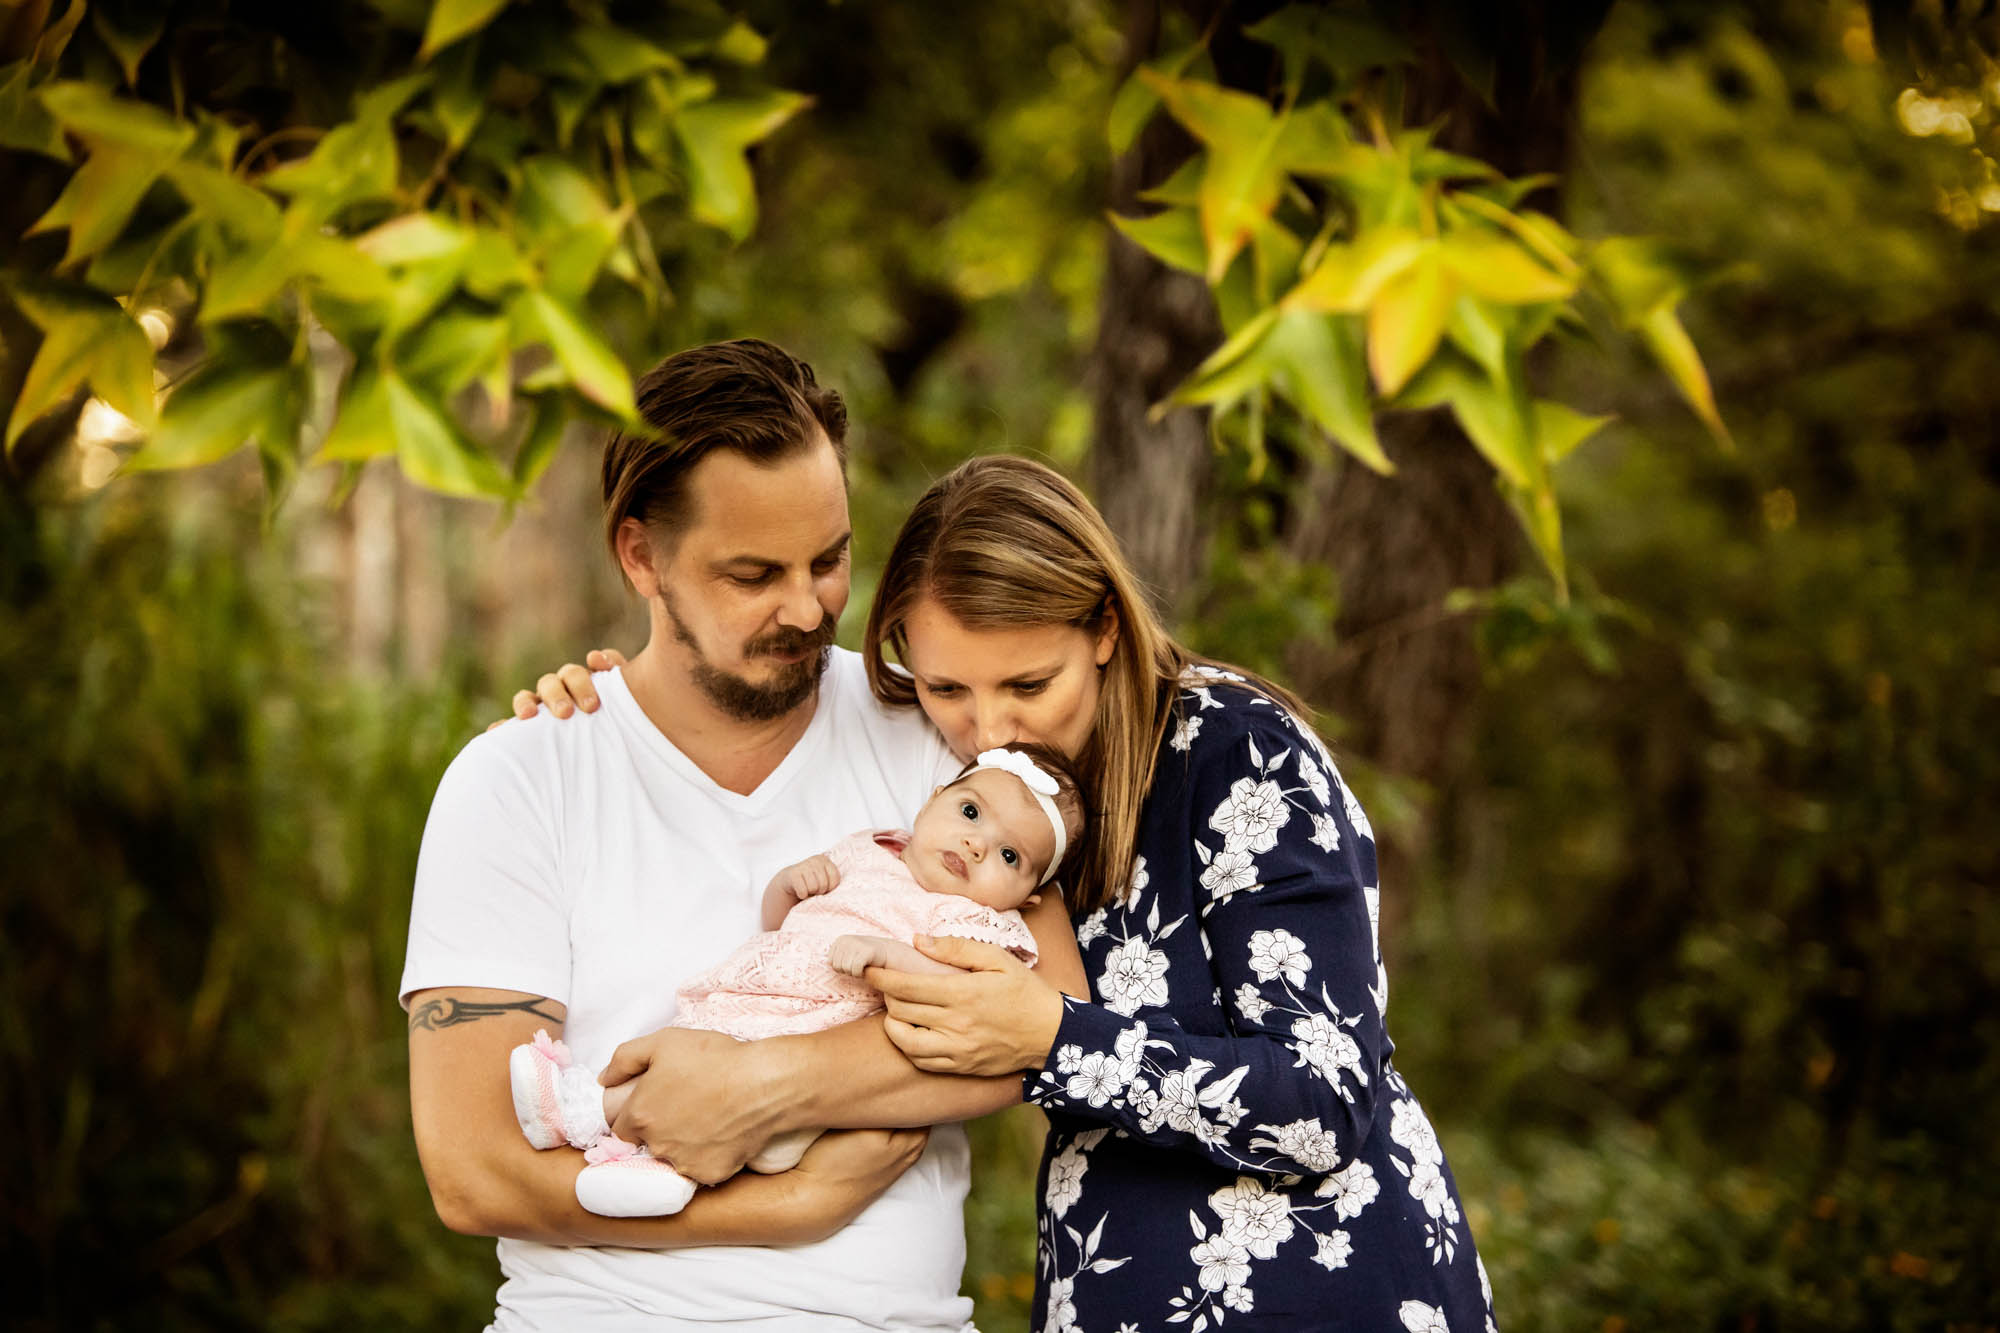 WHAT SHOULD WE WEAR TO OUR PHOTOGRAPHY SESSION?, Brisbane Birth Photography